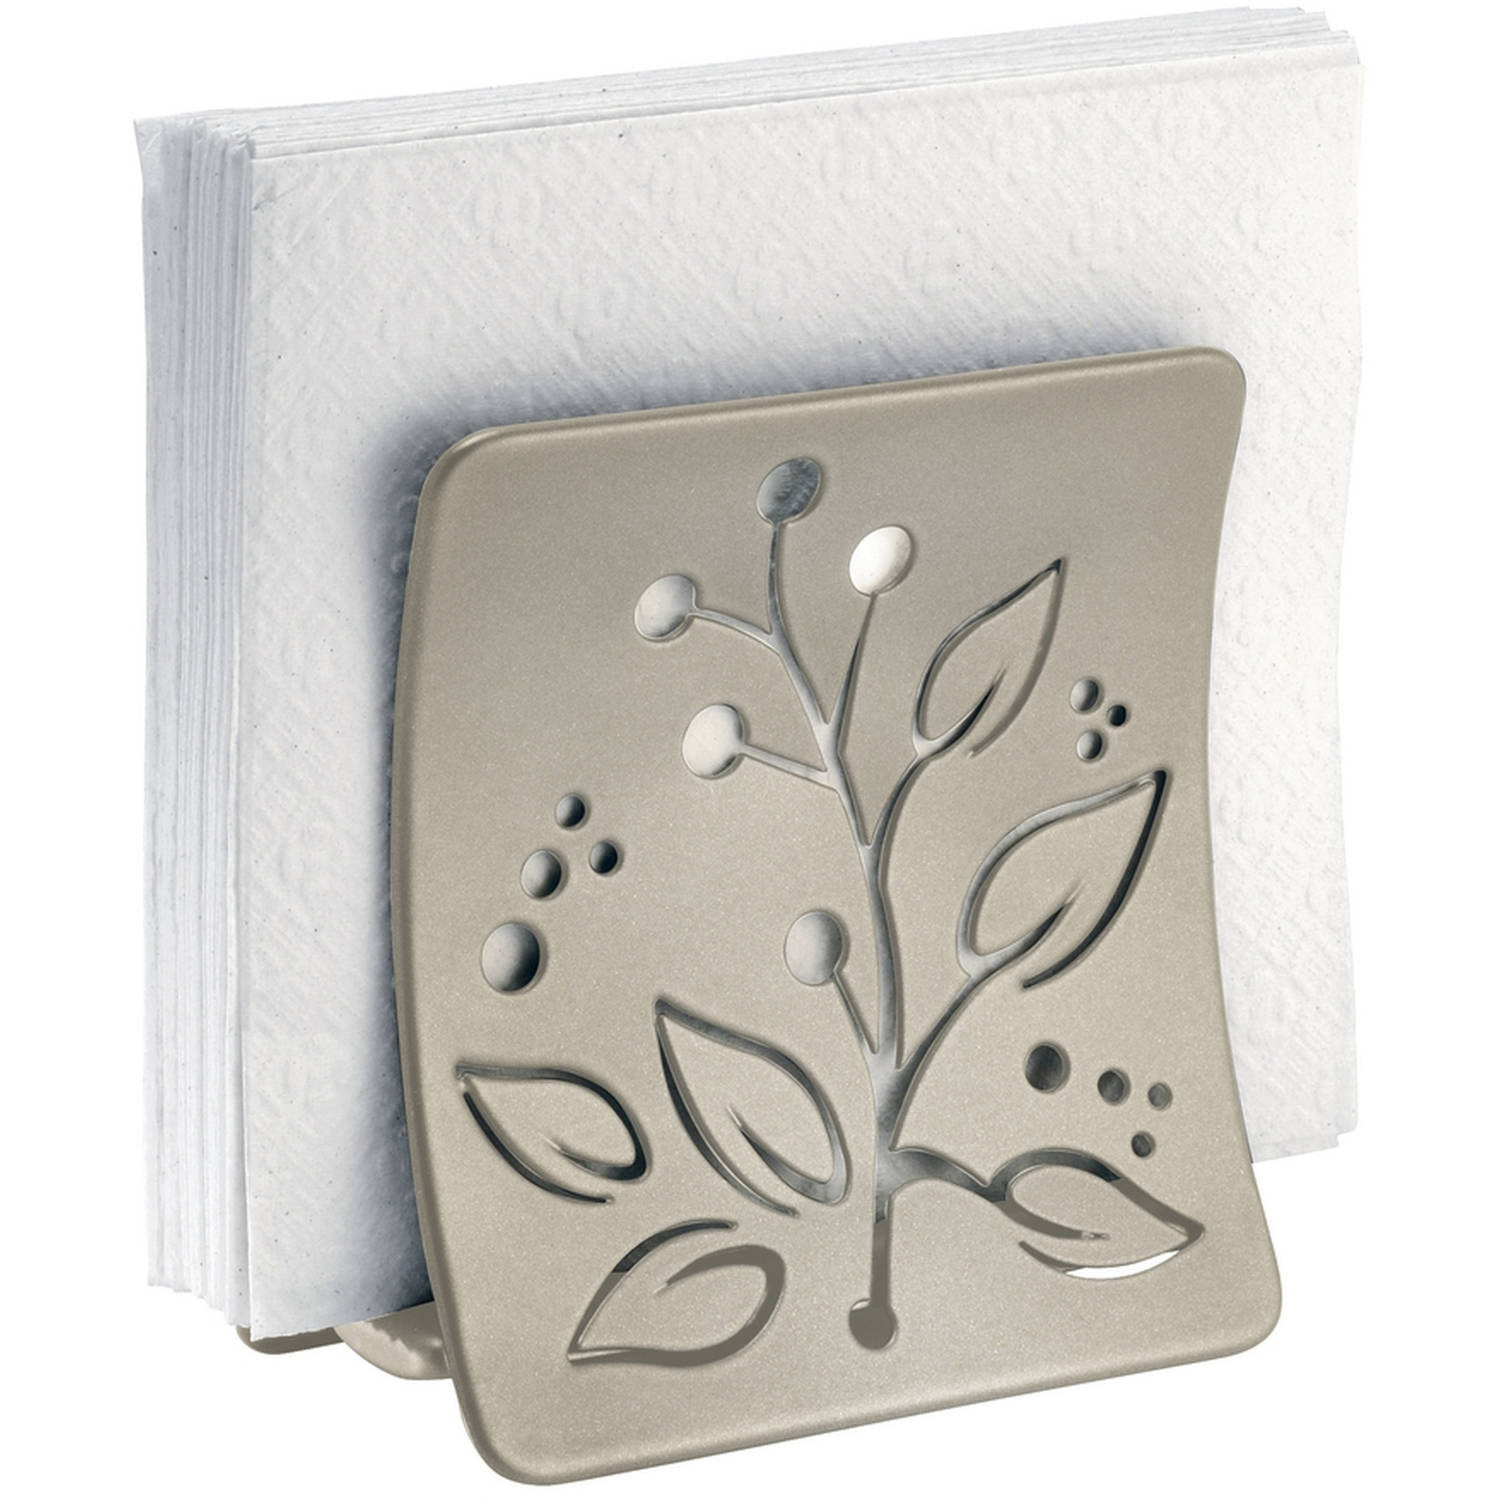 InterDesign Buco Napkin Holder, Satin